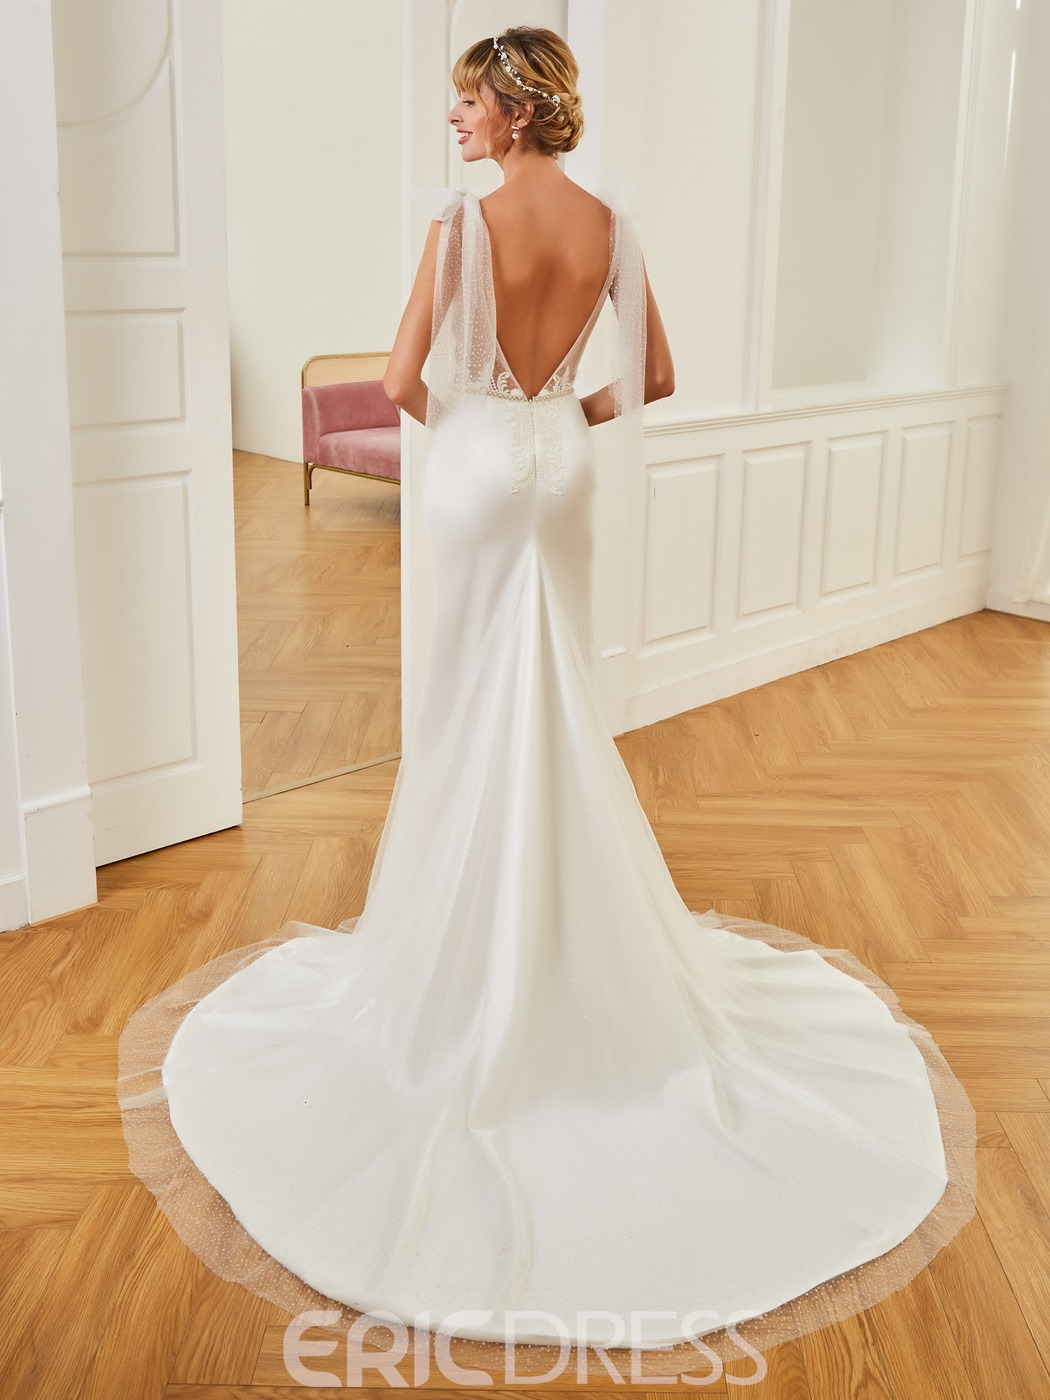 Ericdress V Neck Mermaid Backless Tulle Wedding Dress